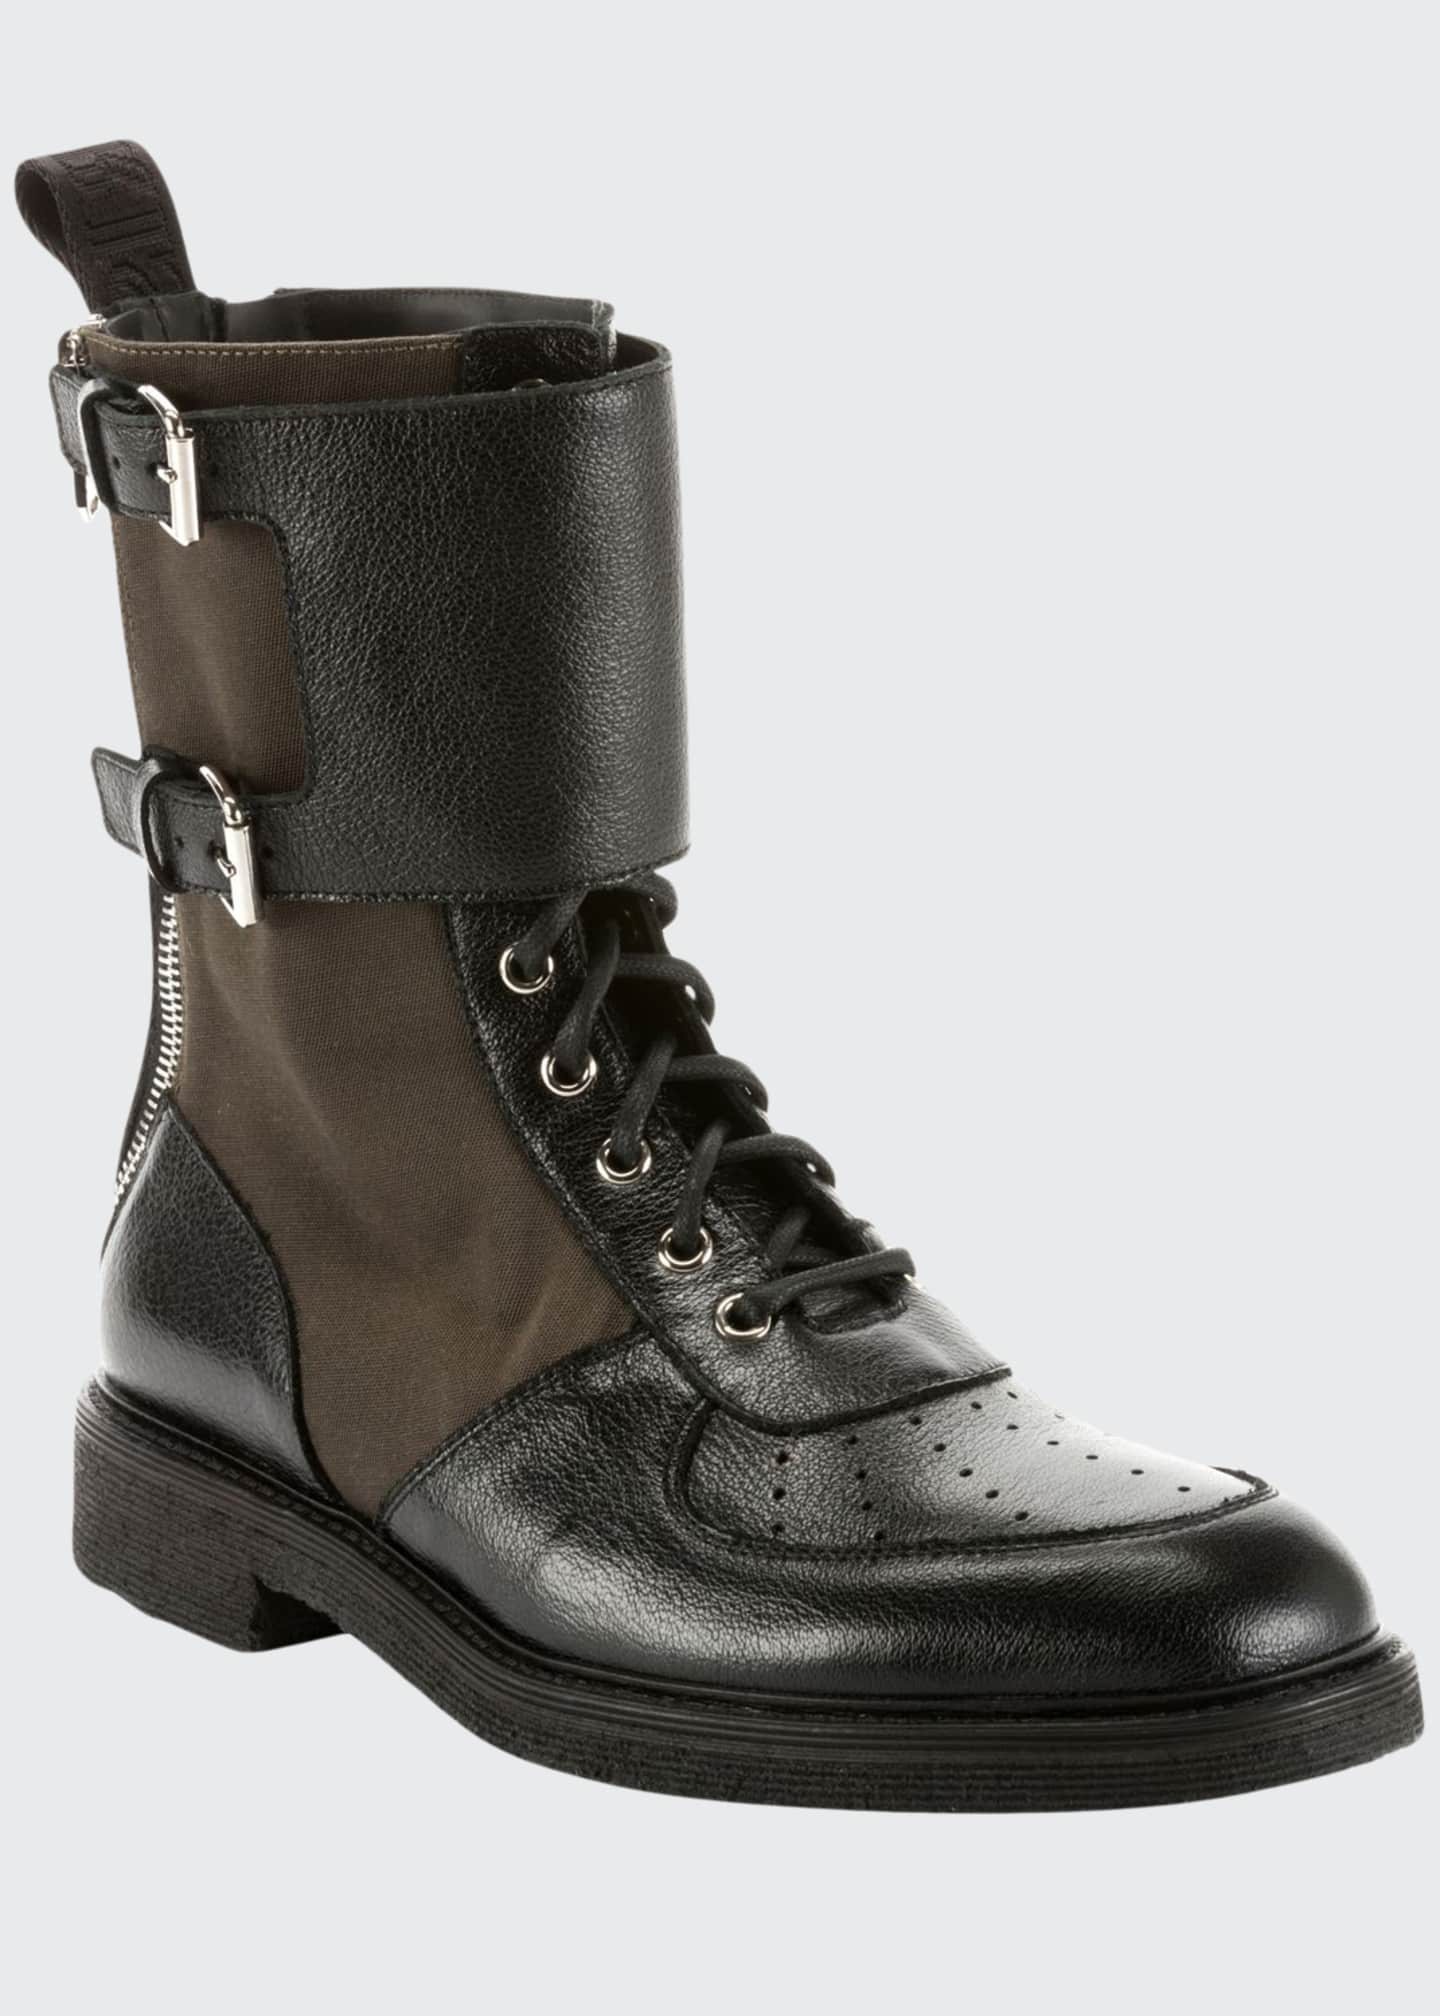 Balmain Buffalo Leather & Nylon Combat Boots